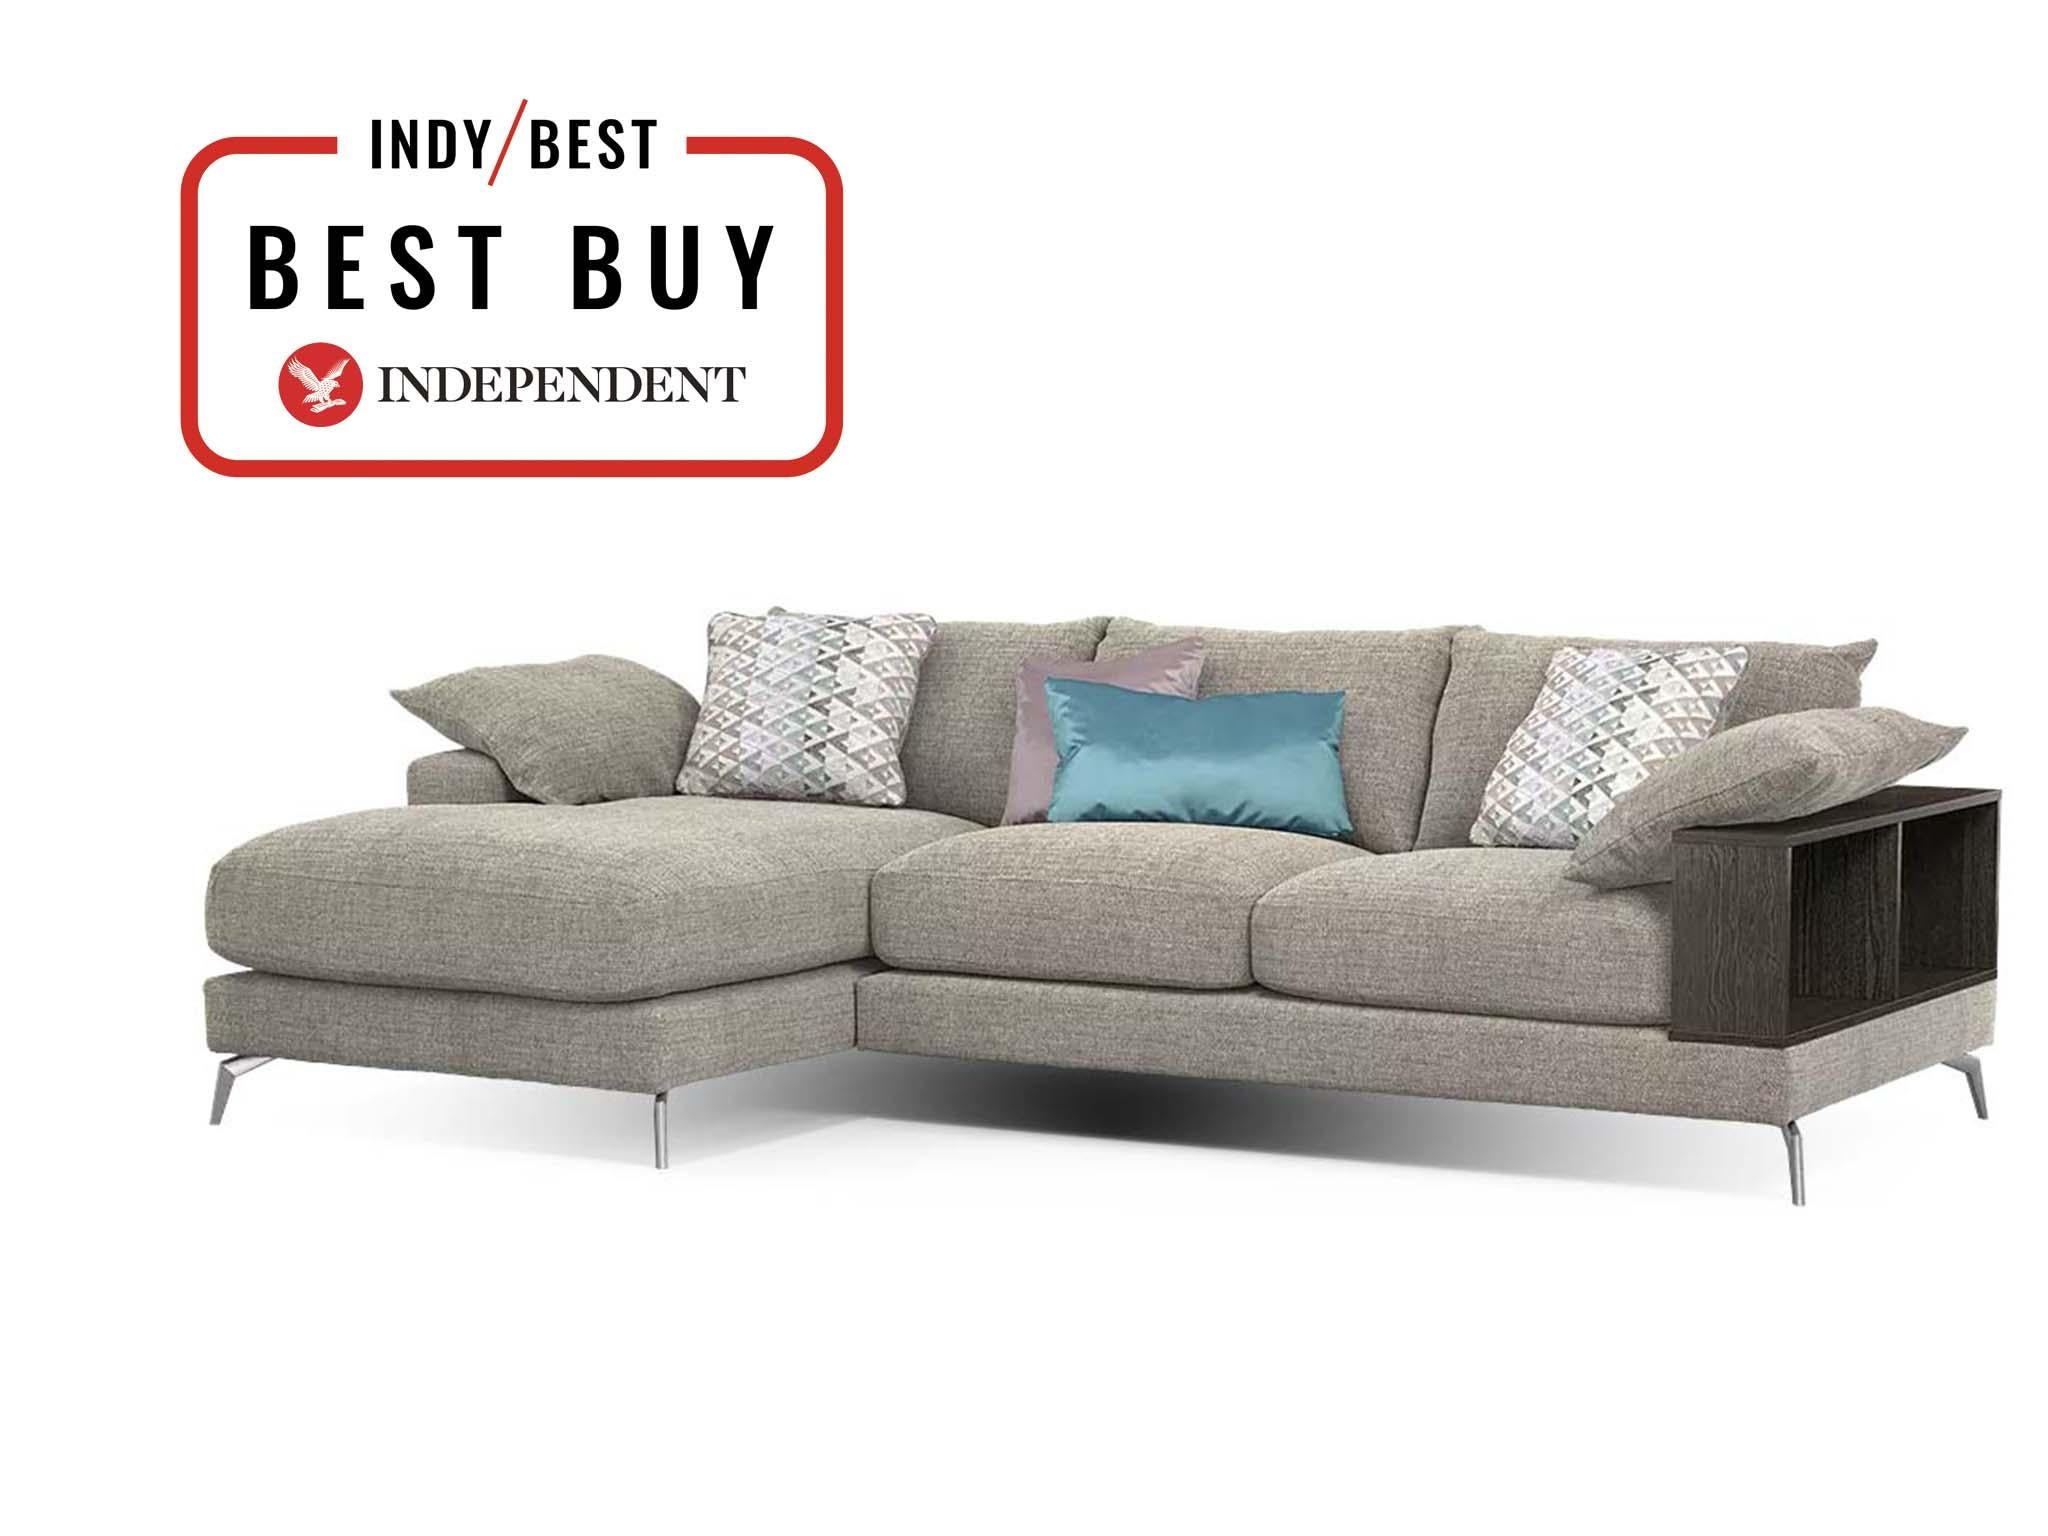 Pleasant 8 Best Sofas With Storage The Independent Interior Design Ideas Clesiryabchikinfo